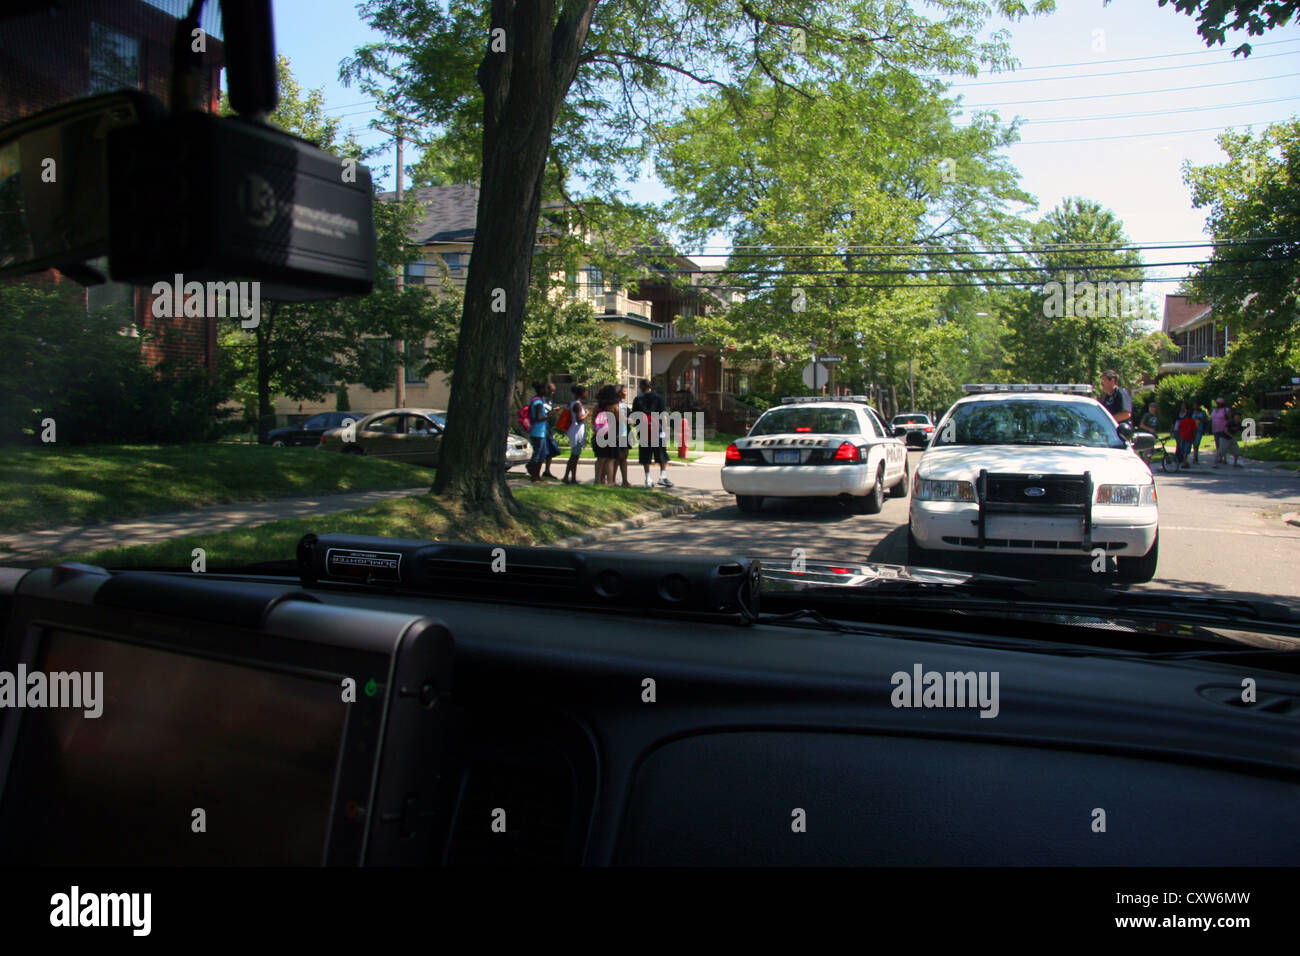 Cops from Grosse Pointe Park police department respond to a call, Michigan, USA - Stock Image